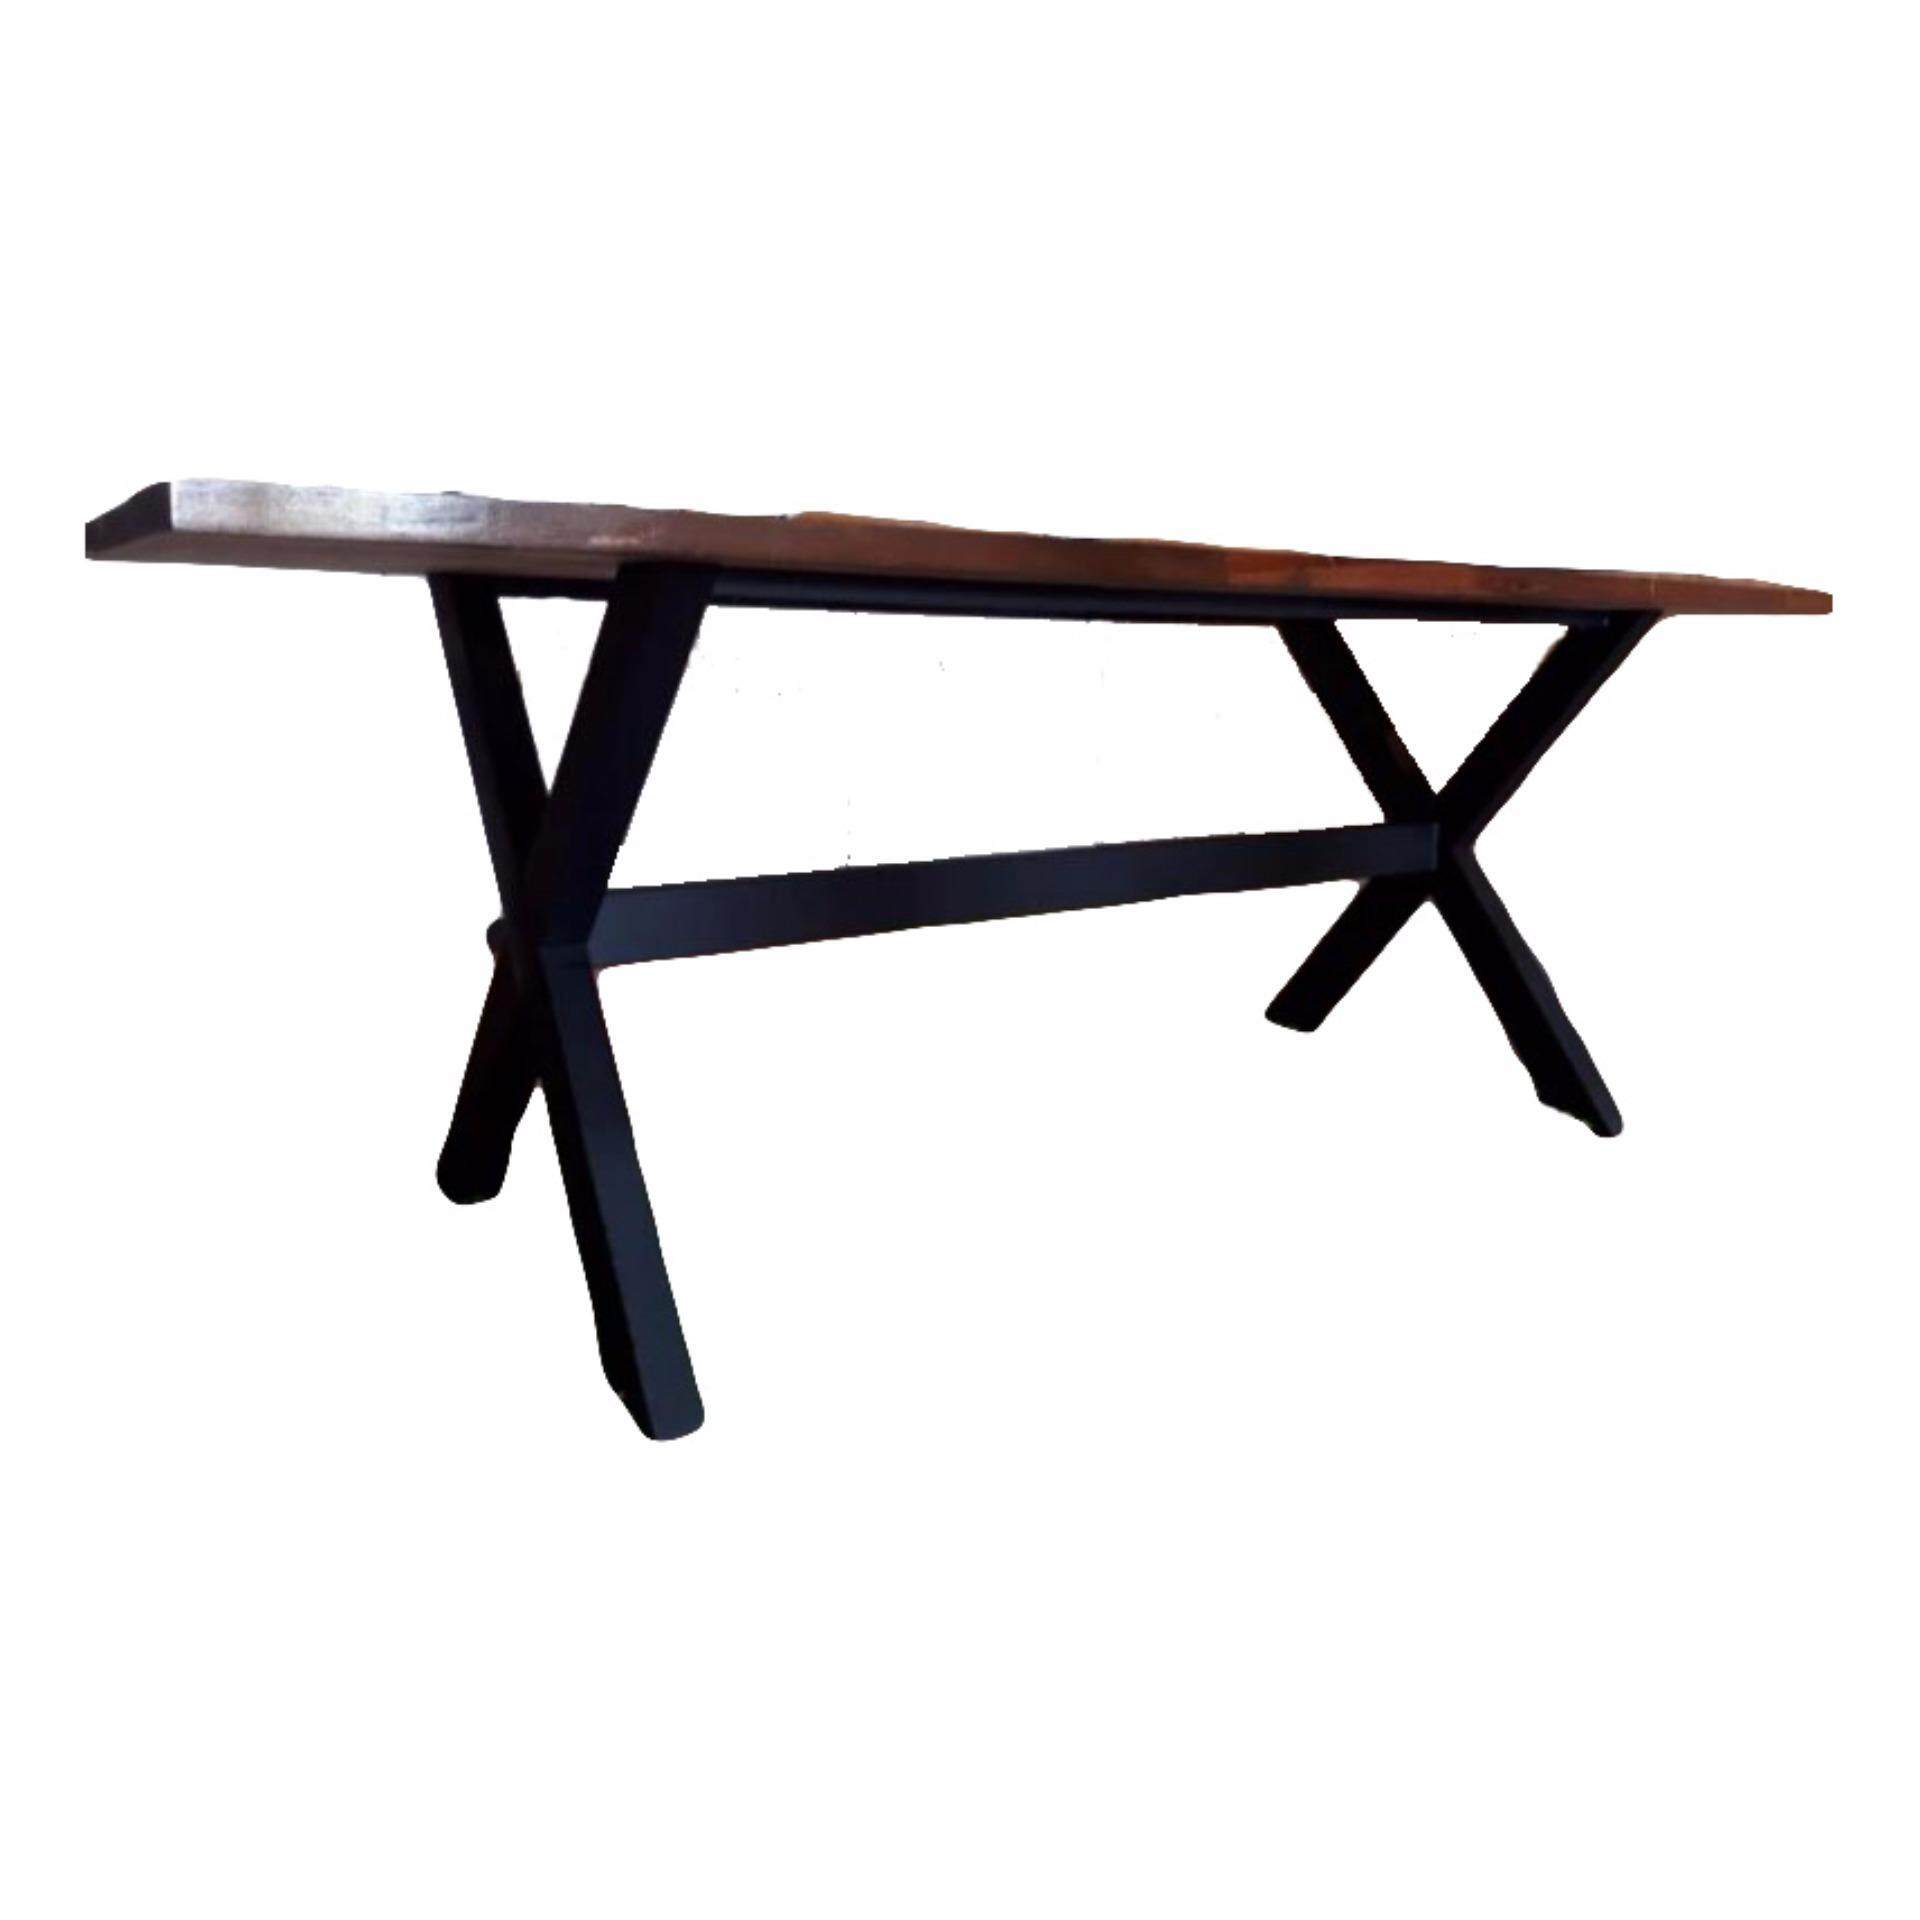 Dining/Meeting table with Meranti wood (brown) (7ft X 3ft X 2ft)